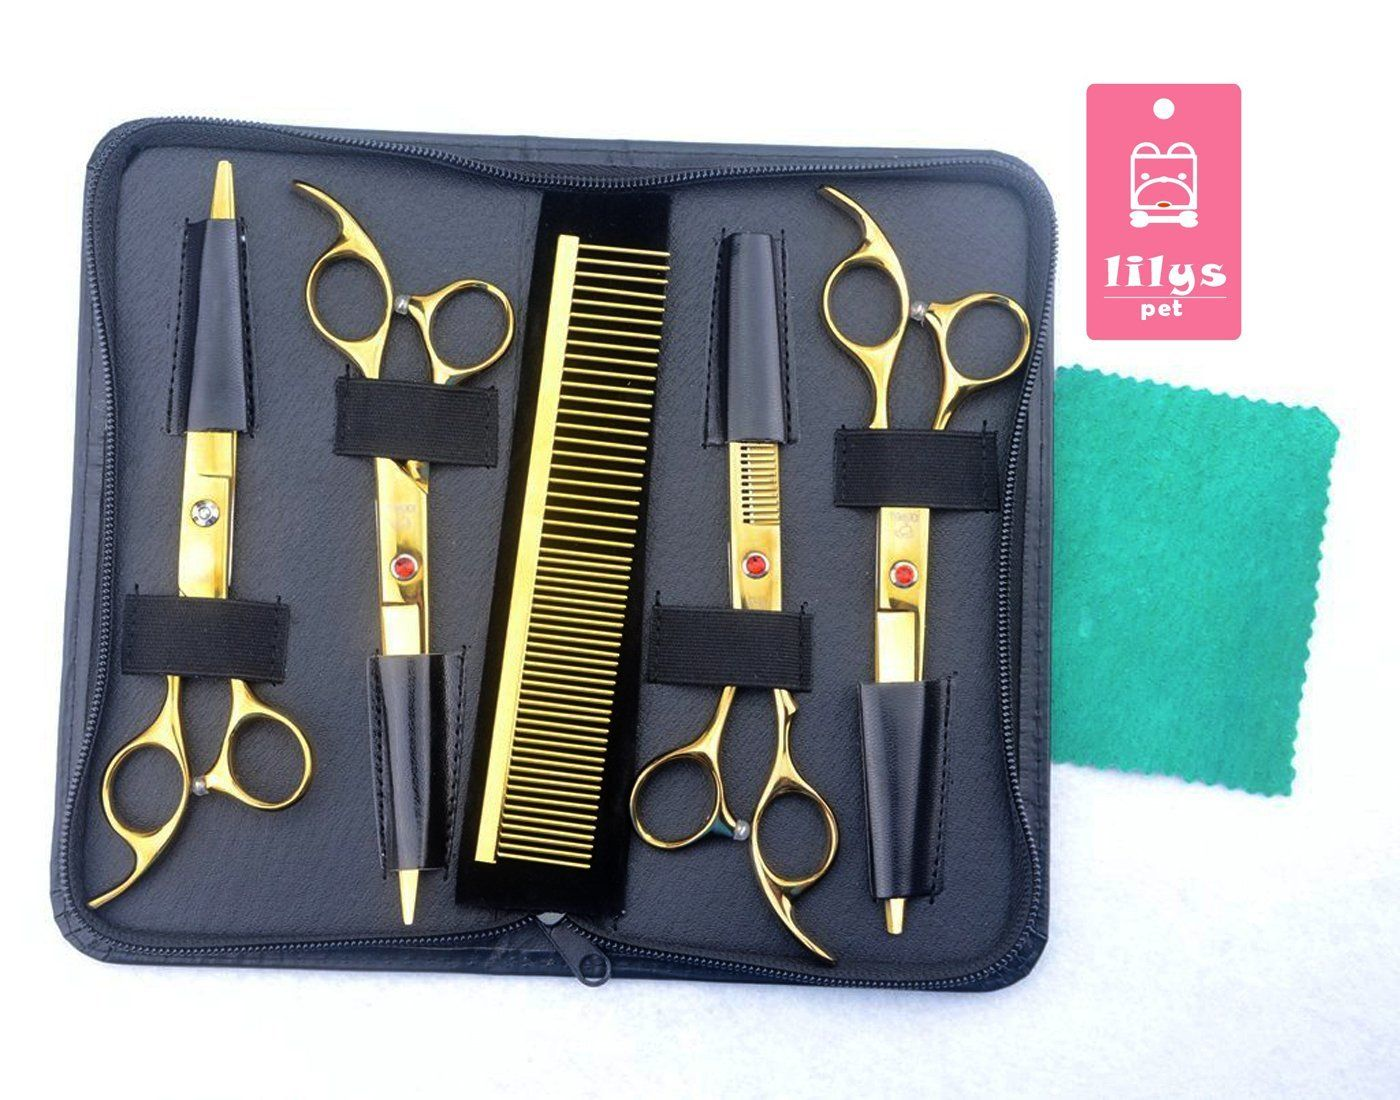 Lilys Pet 7inch Professional Golden Pet Dog Grooming Scissors Suit Cuttingandcurvedandthinning Shears Dog Grooming Scissors Dog Grooming Dog Grooming Supplies